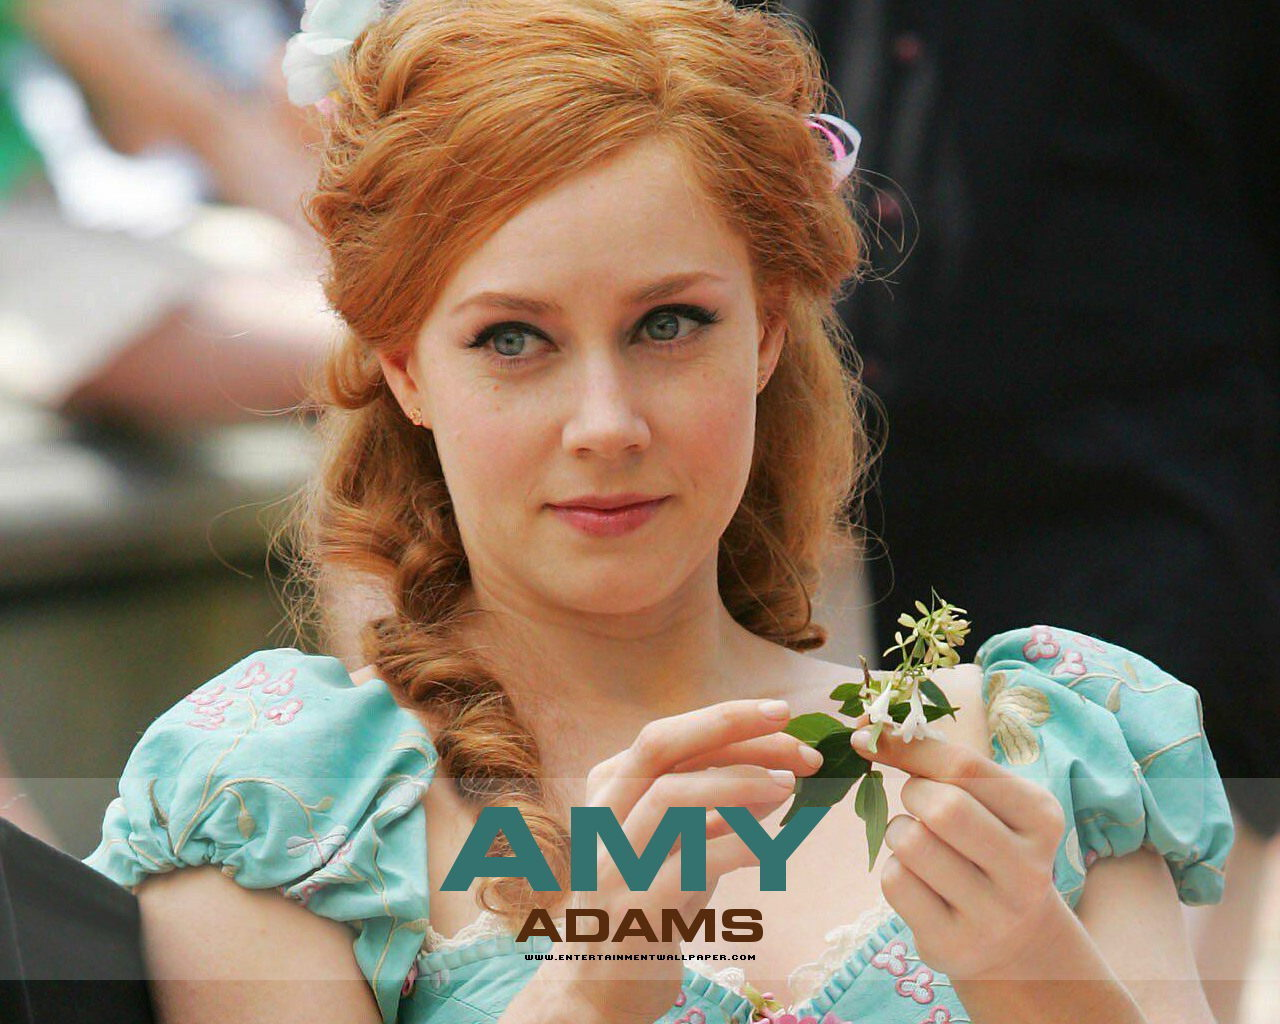 Amy Adams - Amy Adams Wallpaper (4881439 ...